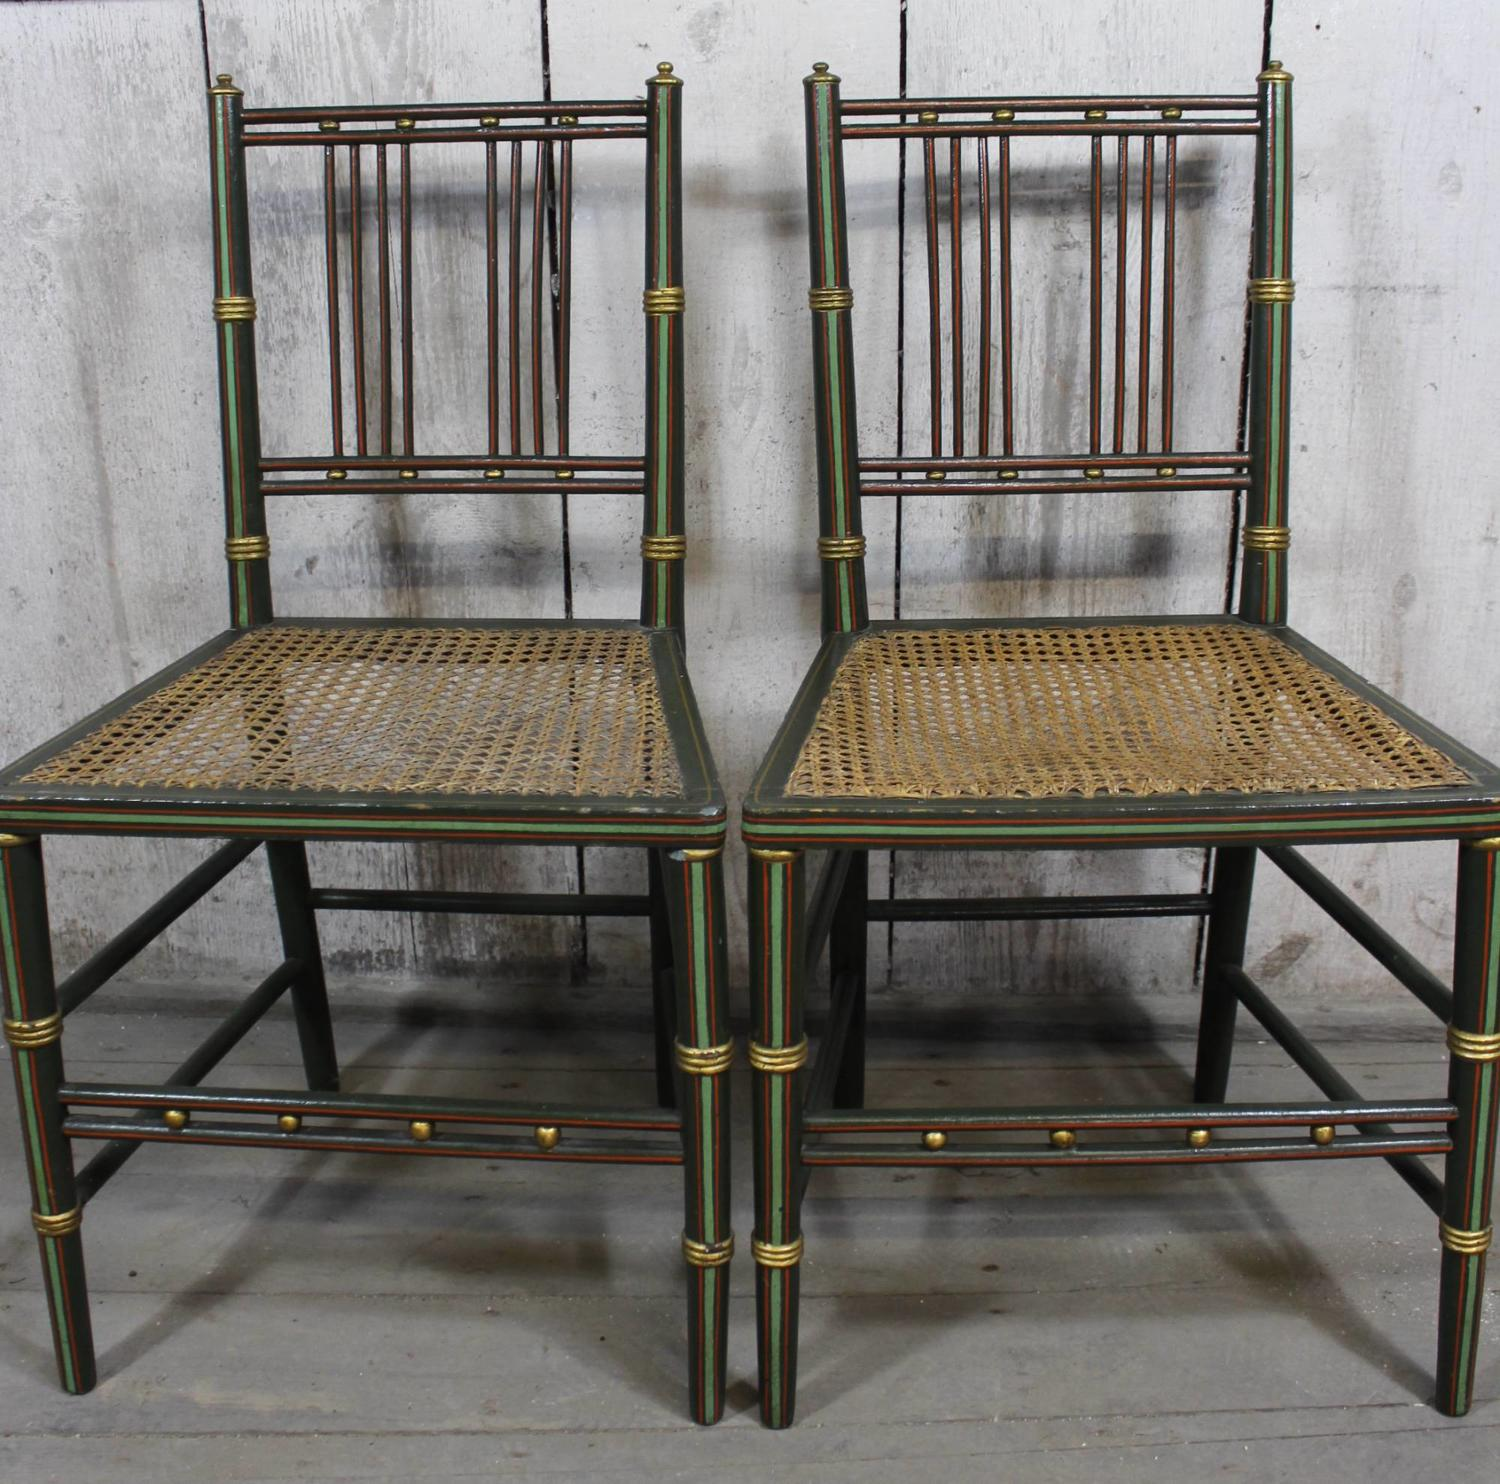 Pair of Painted Regency Chairs